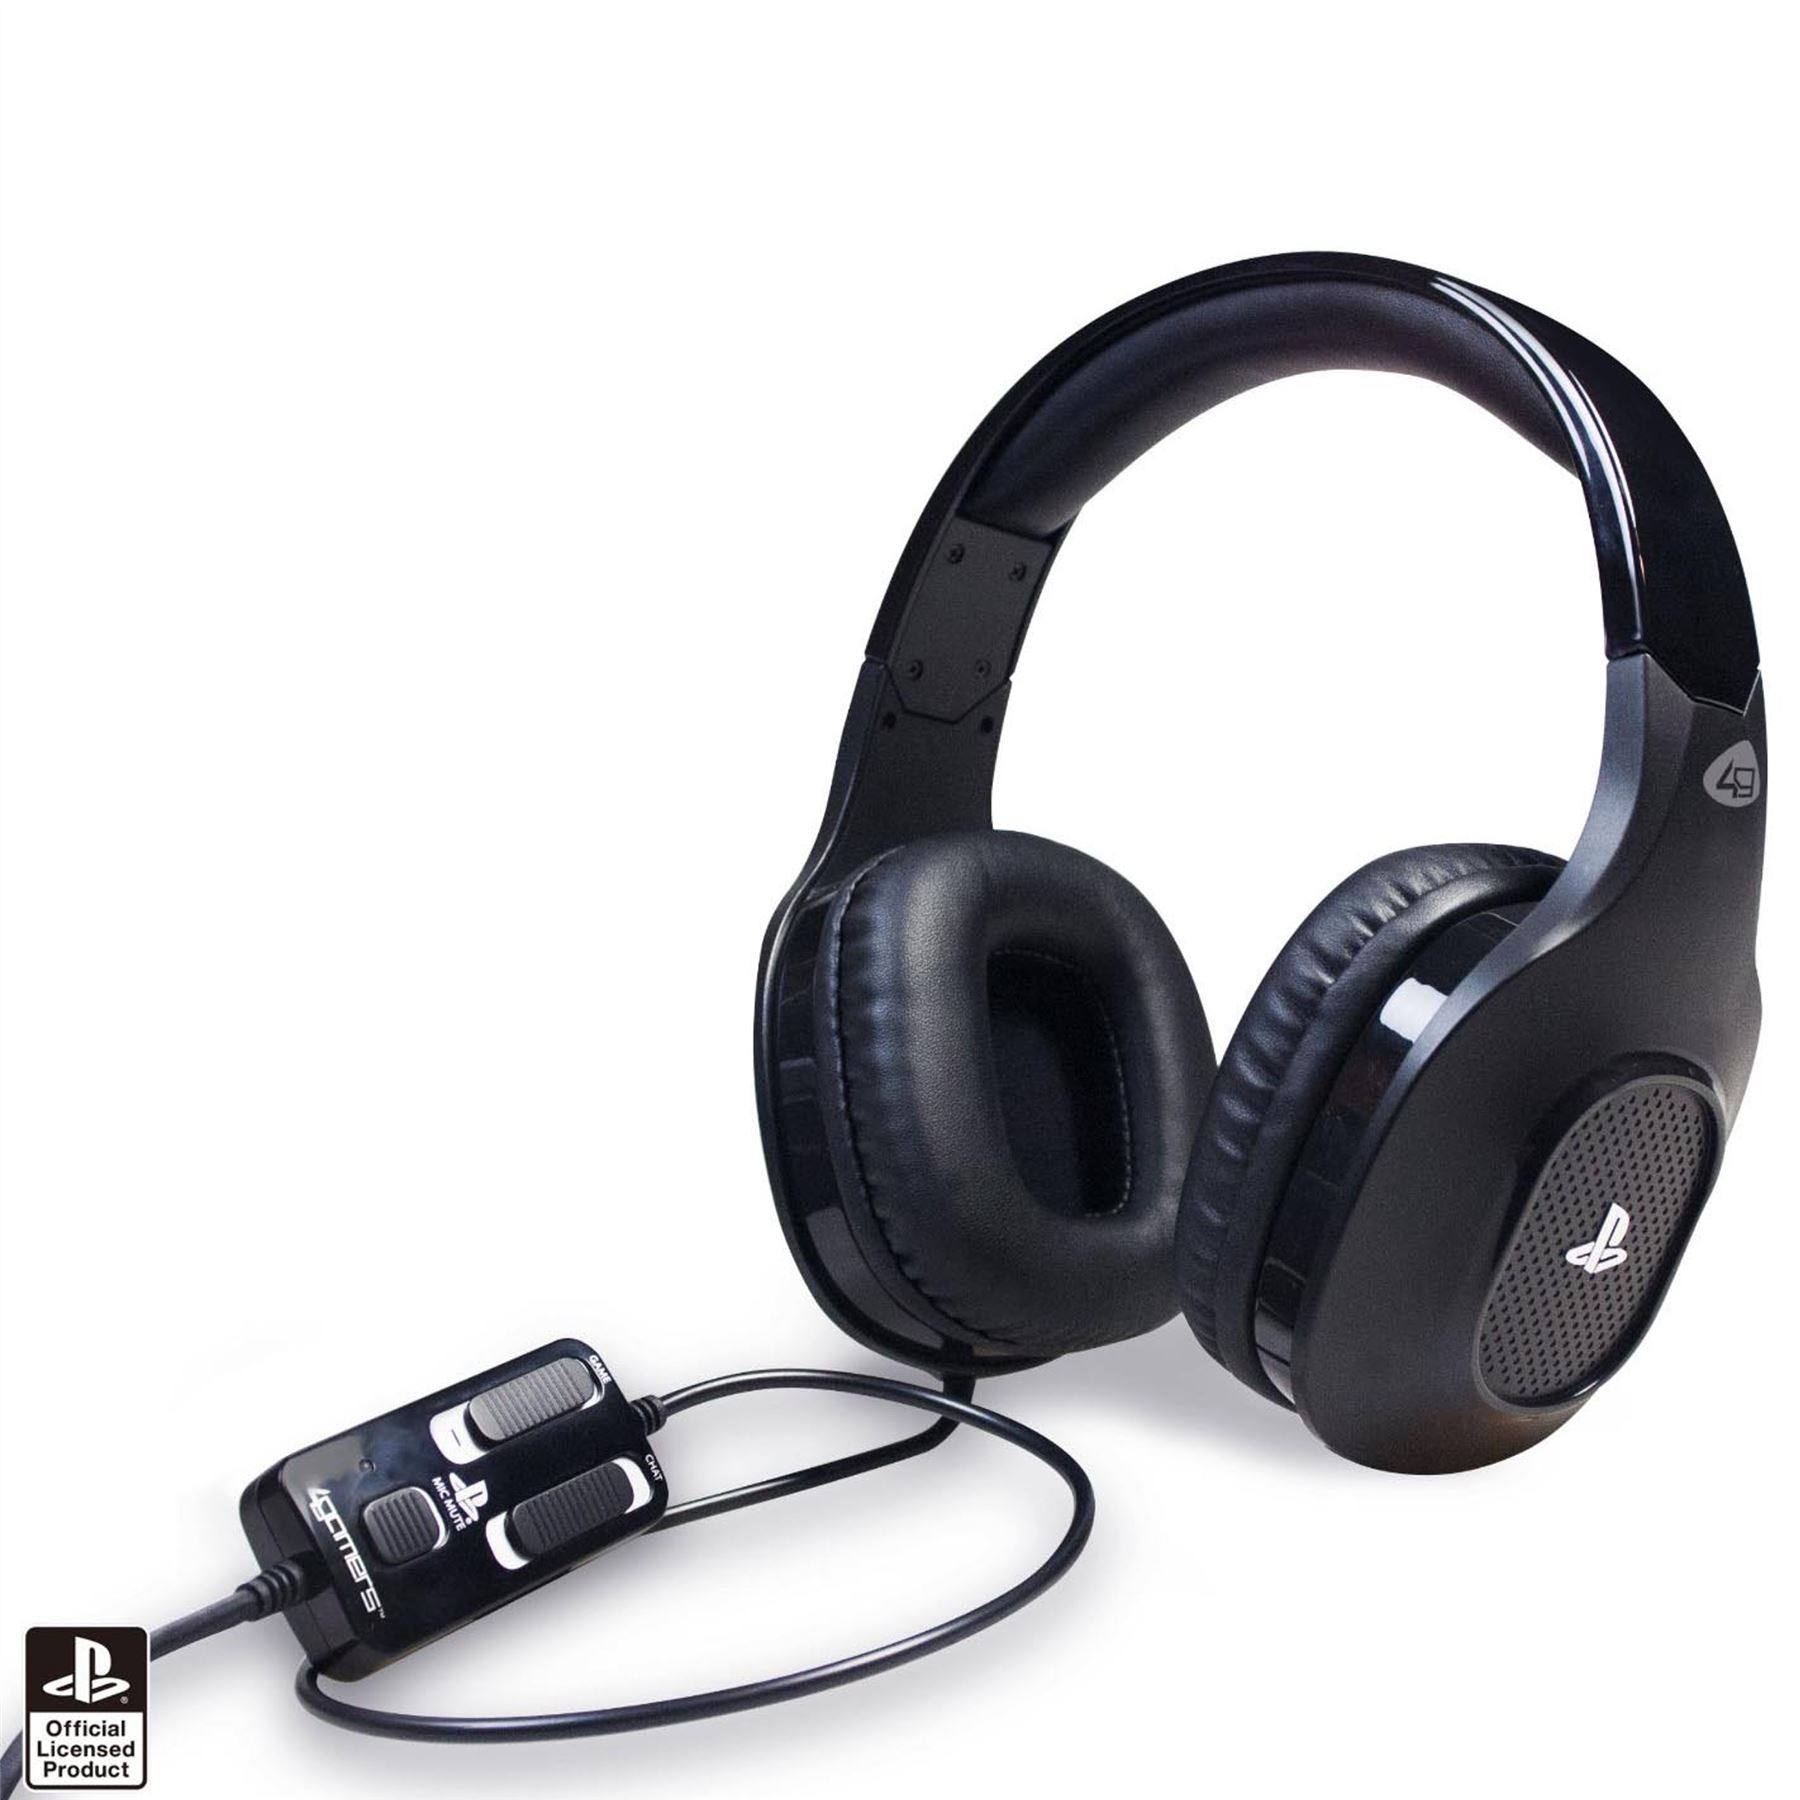 4gamers™ Official Sony PS3® Stereo Gaming Headset CP ...